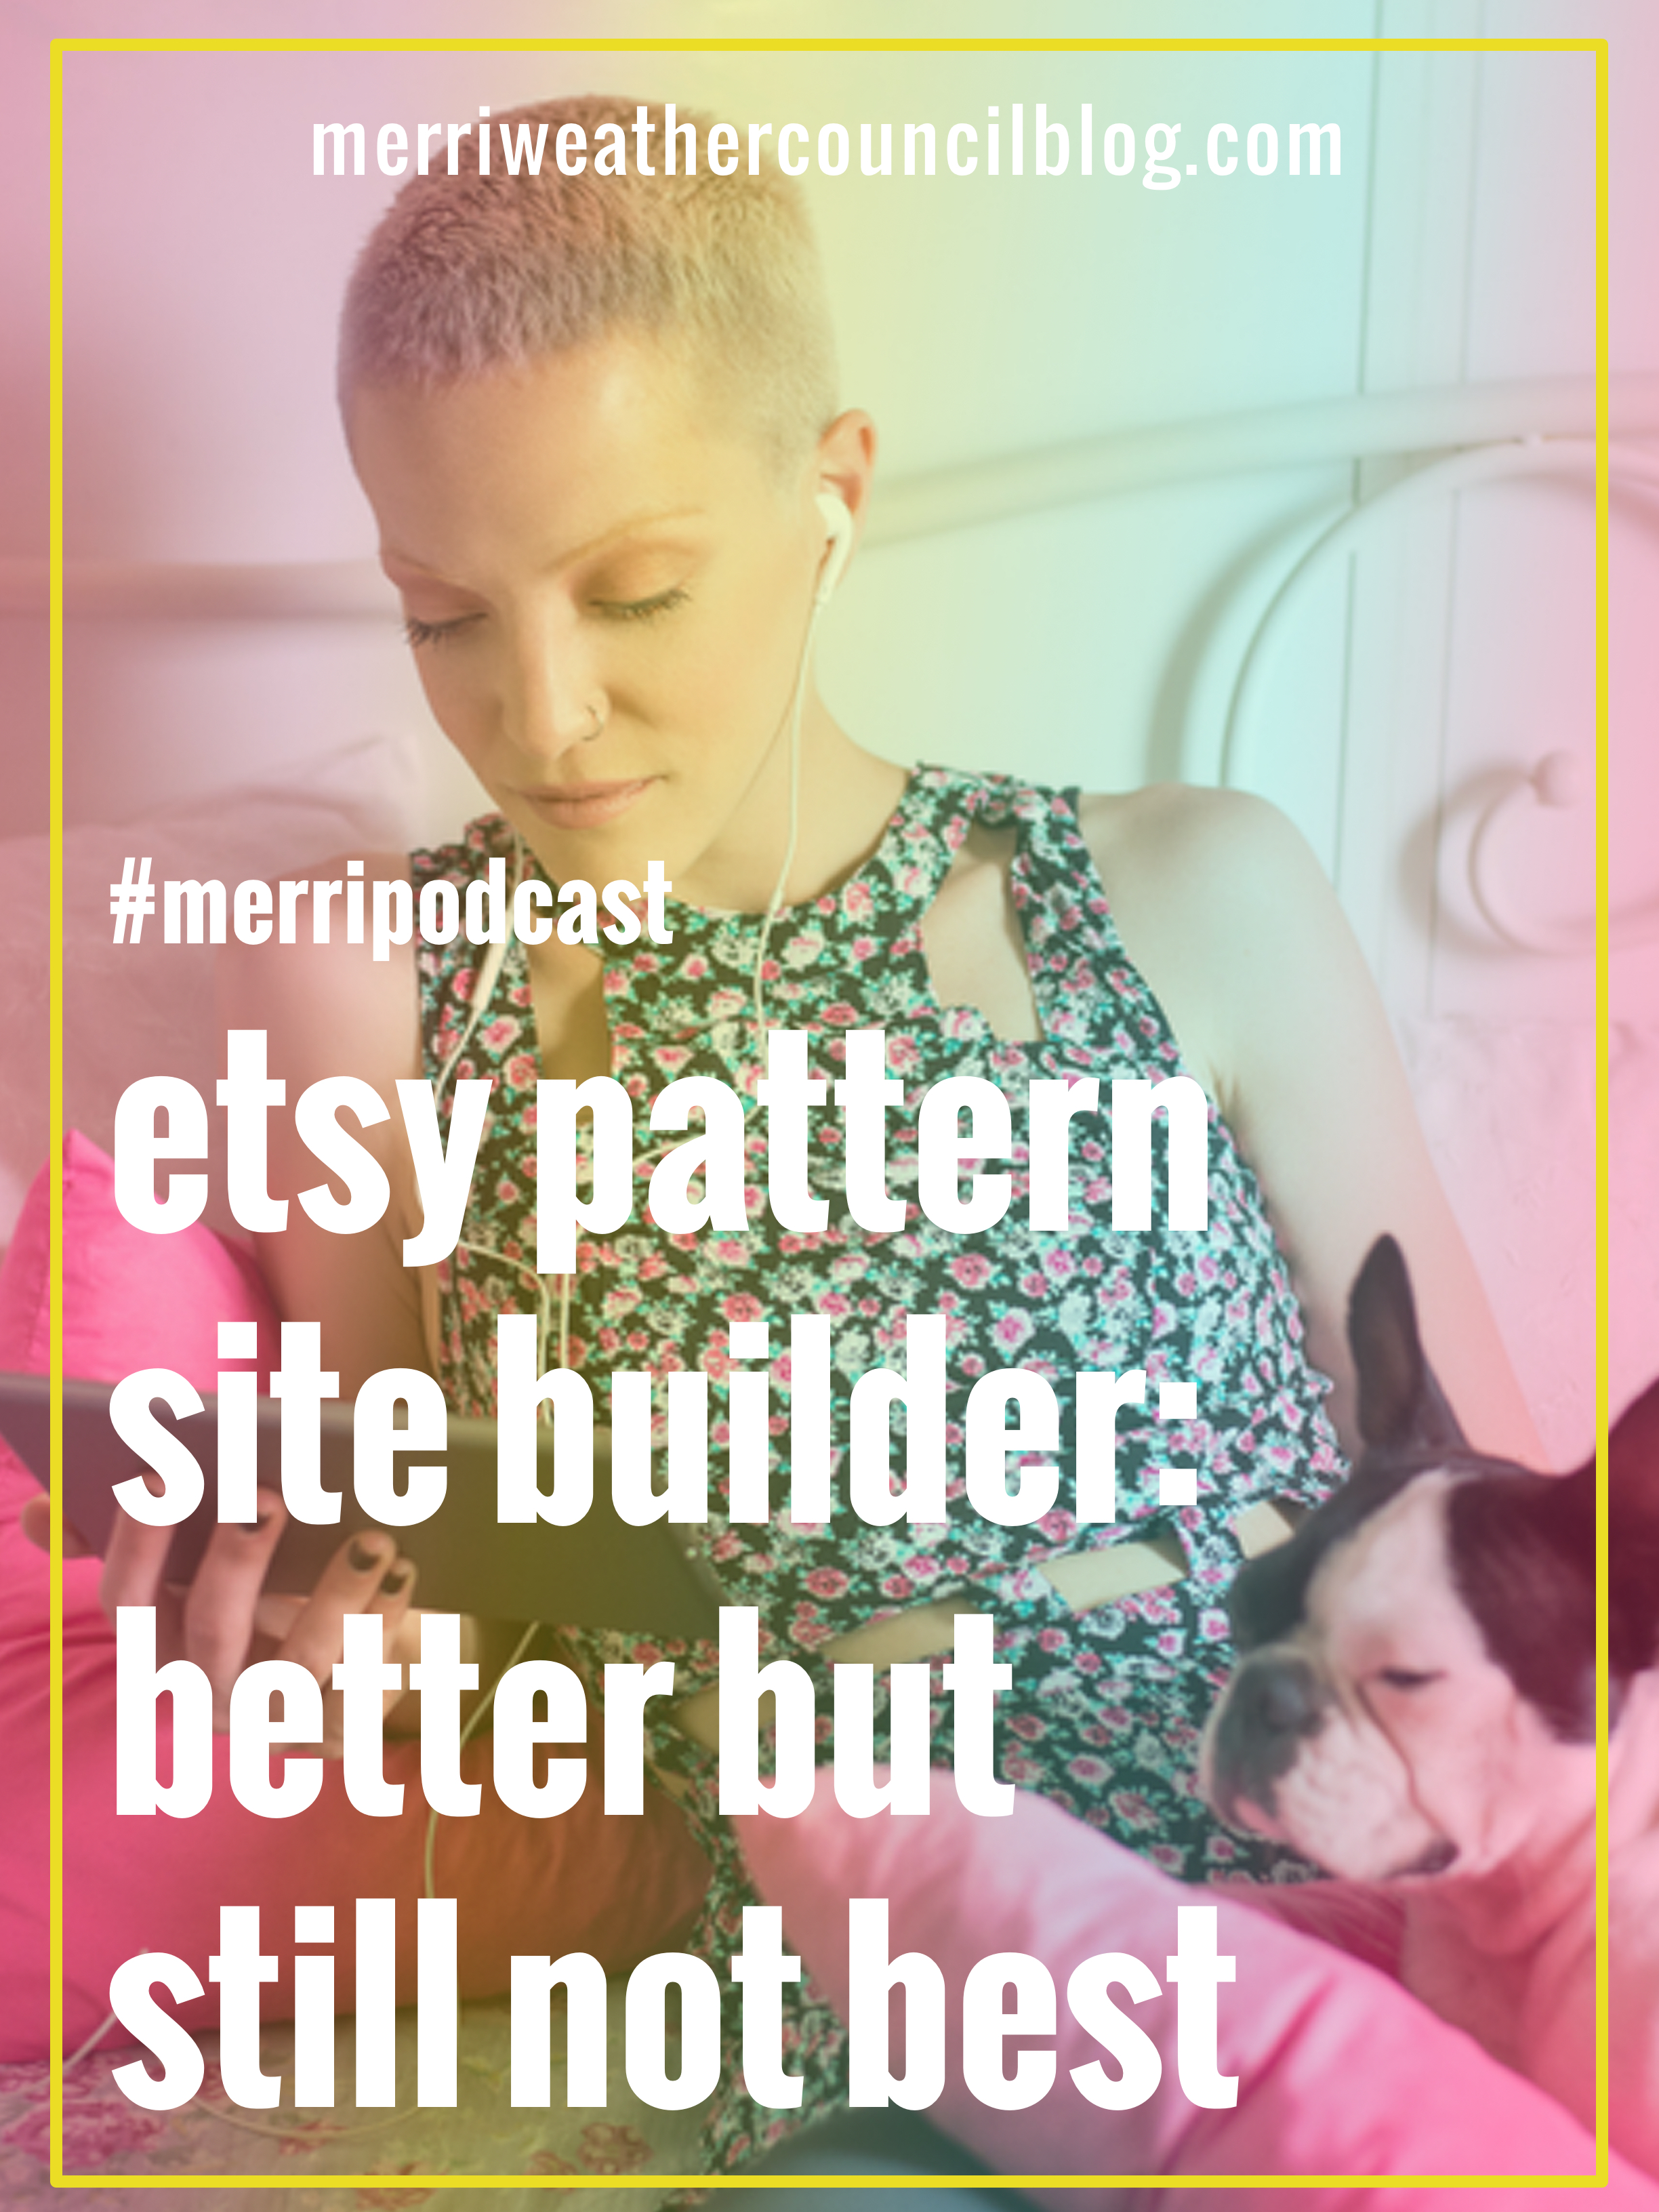 Episode 32: Etsy Pattern - Better But Still Not Best | The Merriweather Council Podcast